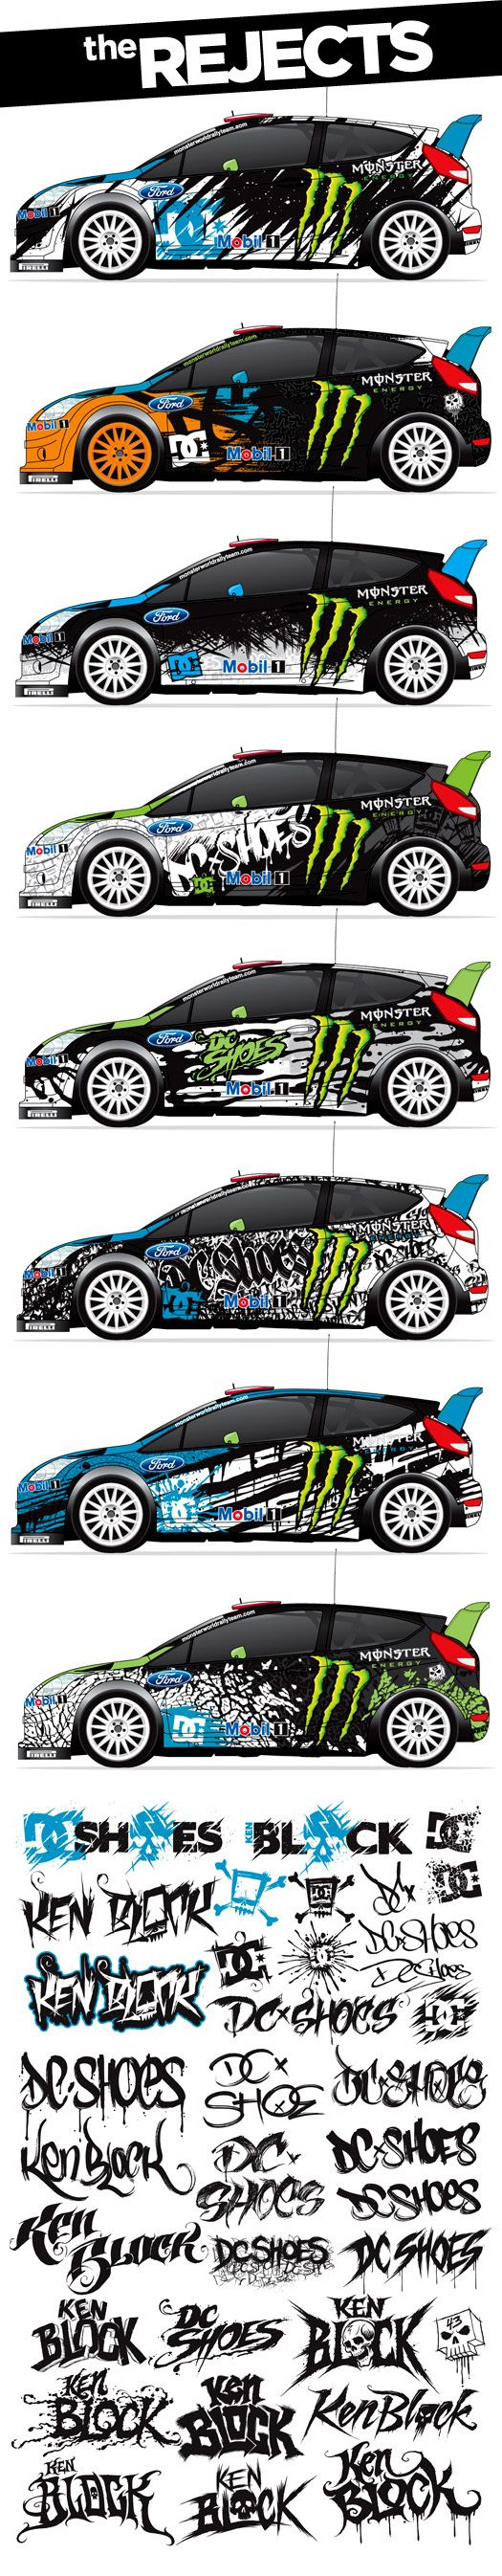 DC Shoes / Ken Block Branding & Vehicle Graphics